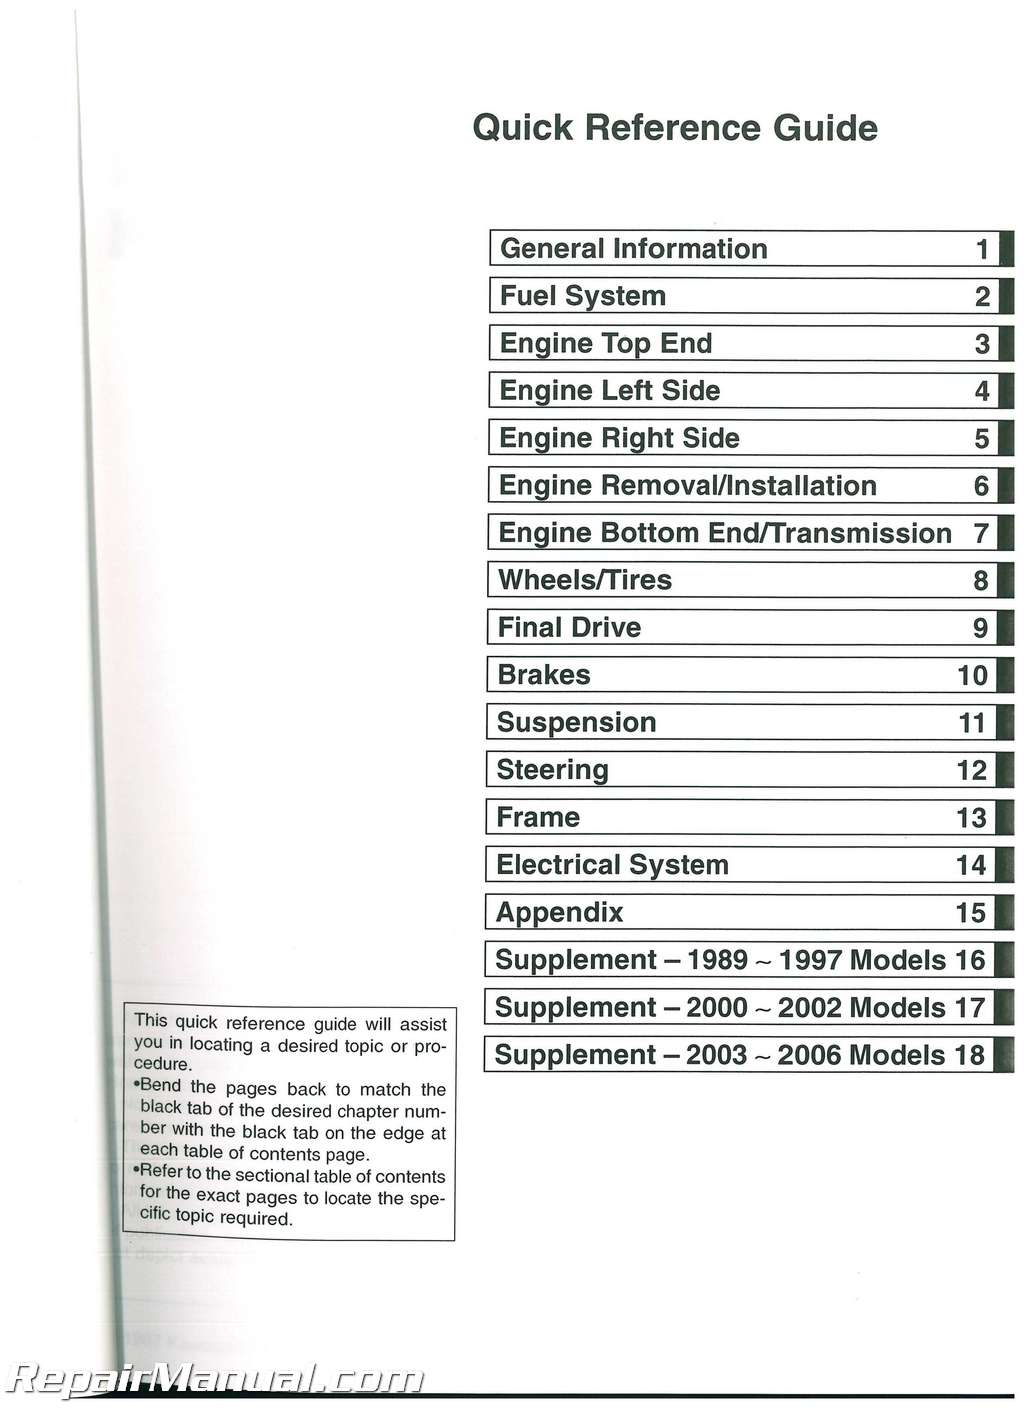 1988-2006 Kawasaki KLF300 Service Manual Supplement